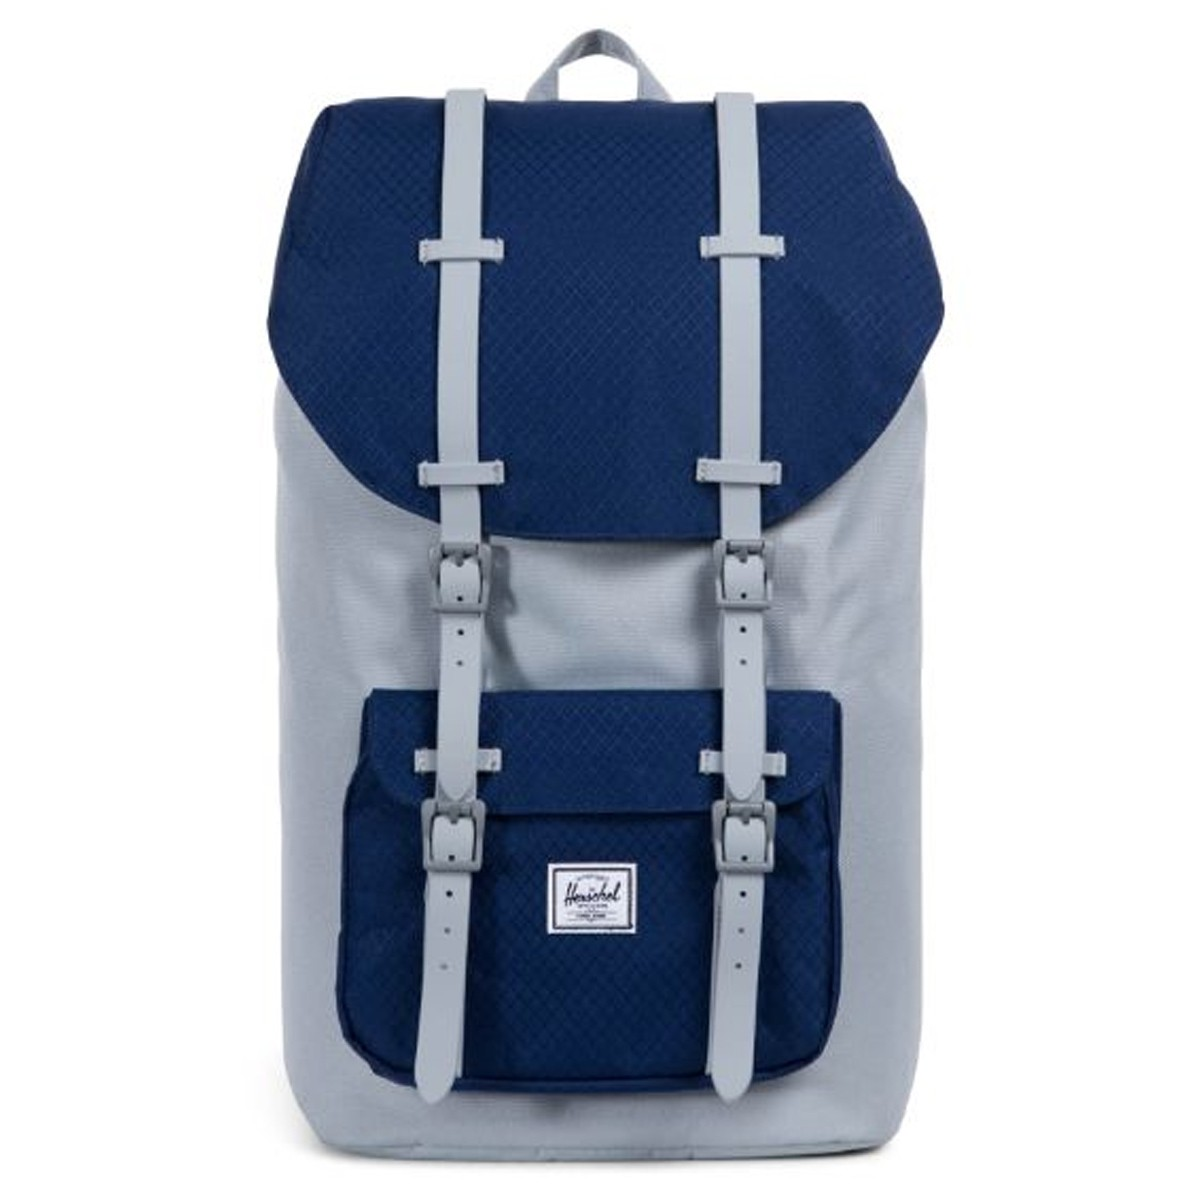 Herschel little america backpack quarryblueprintquarry rubber malvernweather Gallery